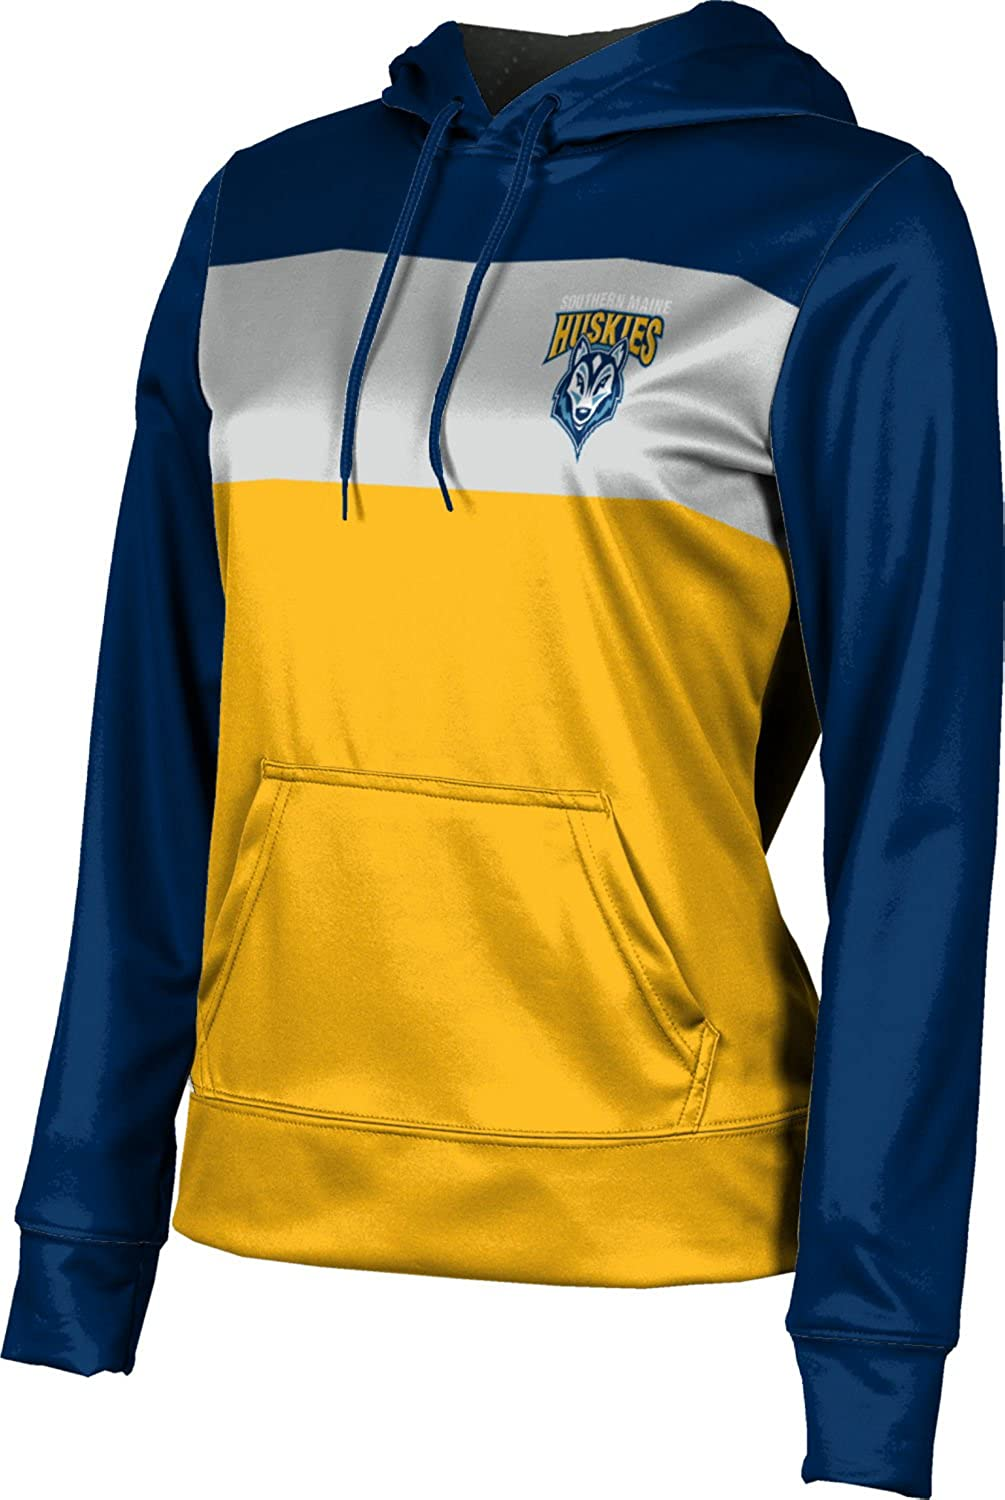 ProSphere University of Southern Maine Boys Full Zip Hoodie Ombre